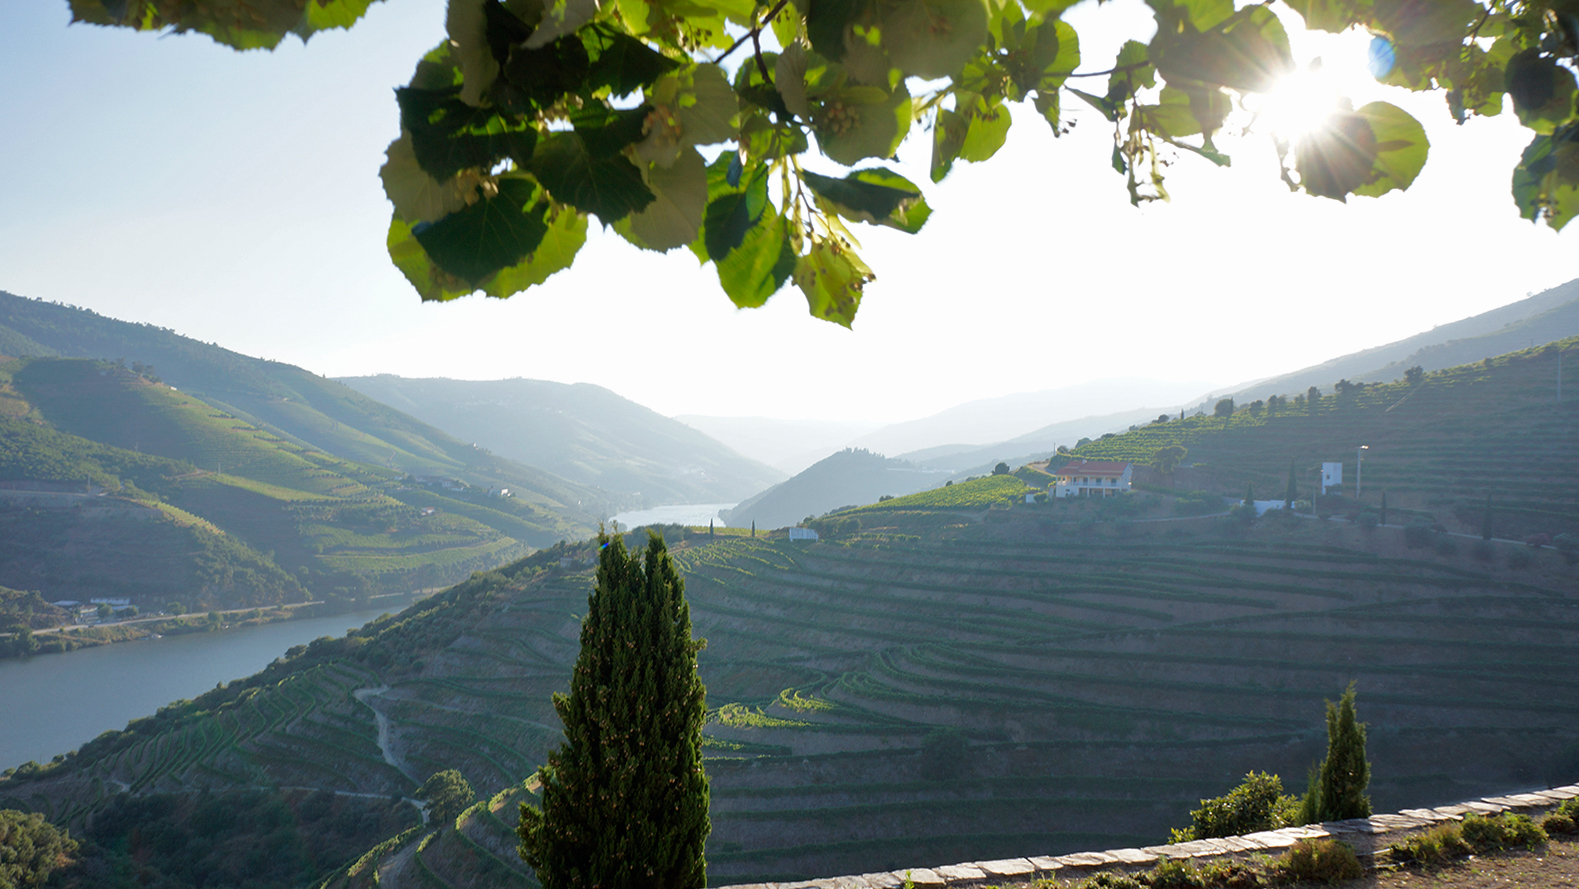 quinta-nova-vineyard-douro-valley-guimaraes-portugal-8